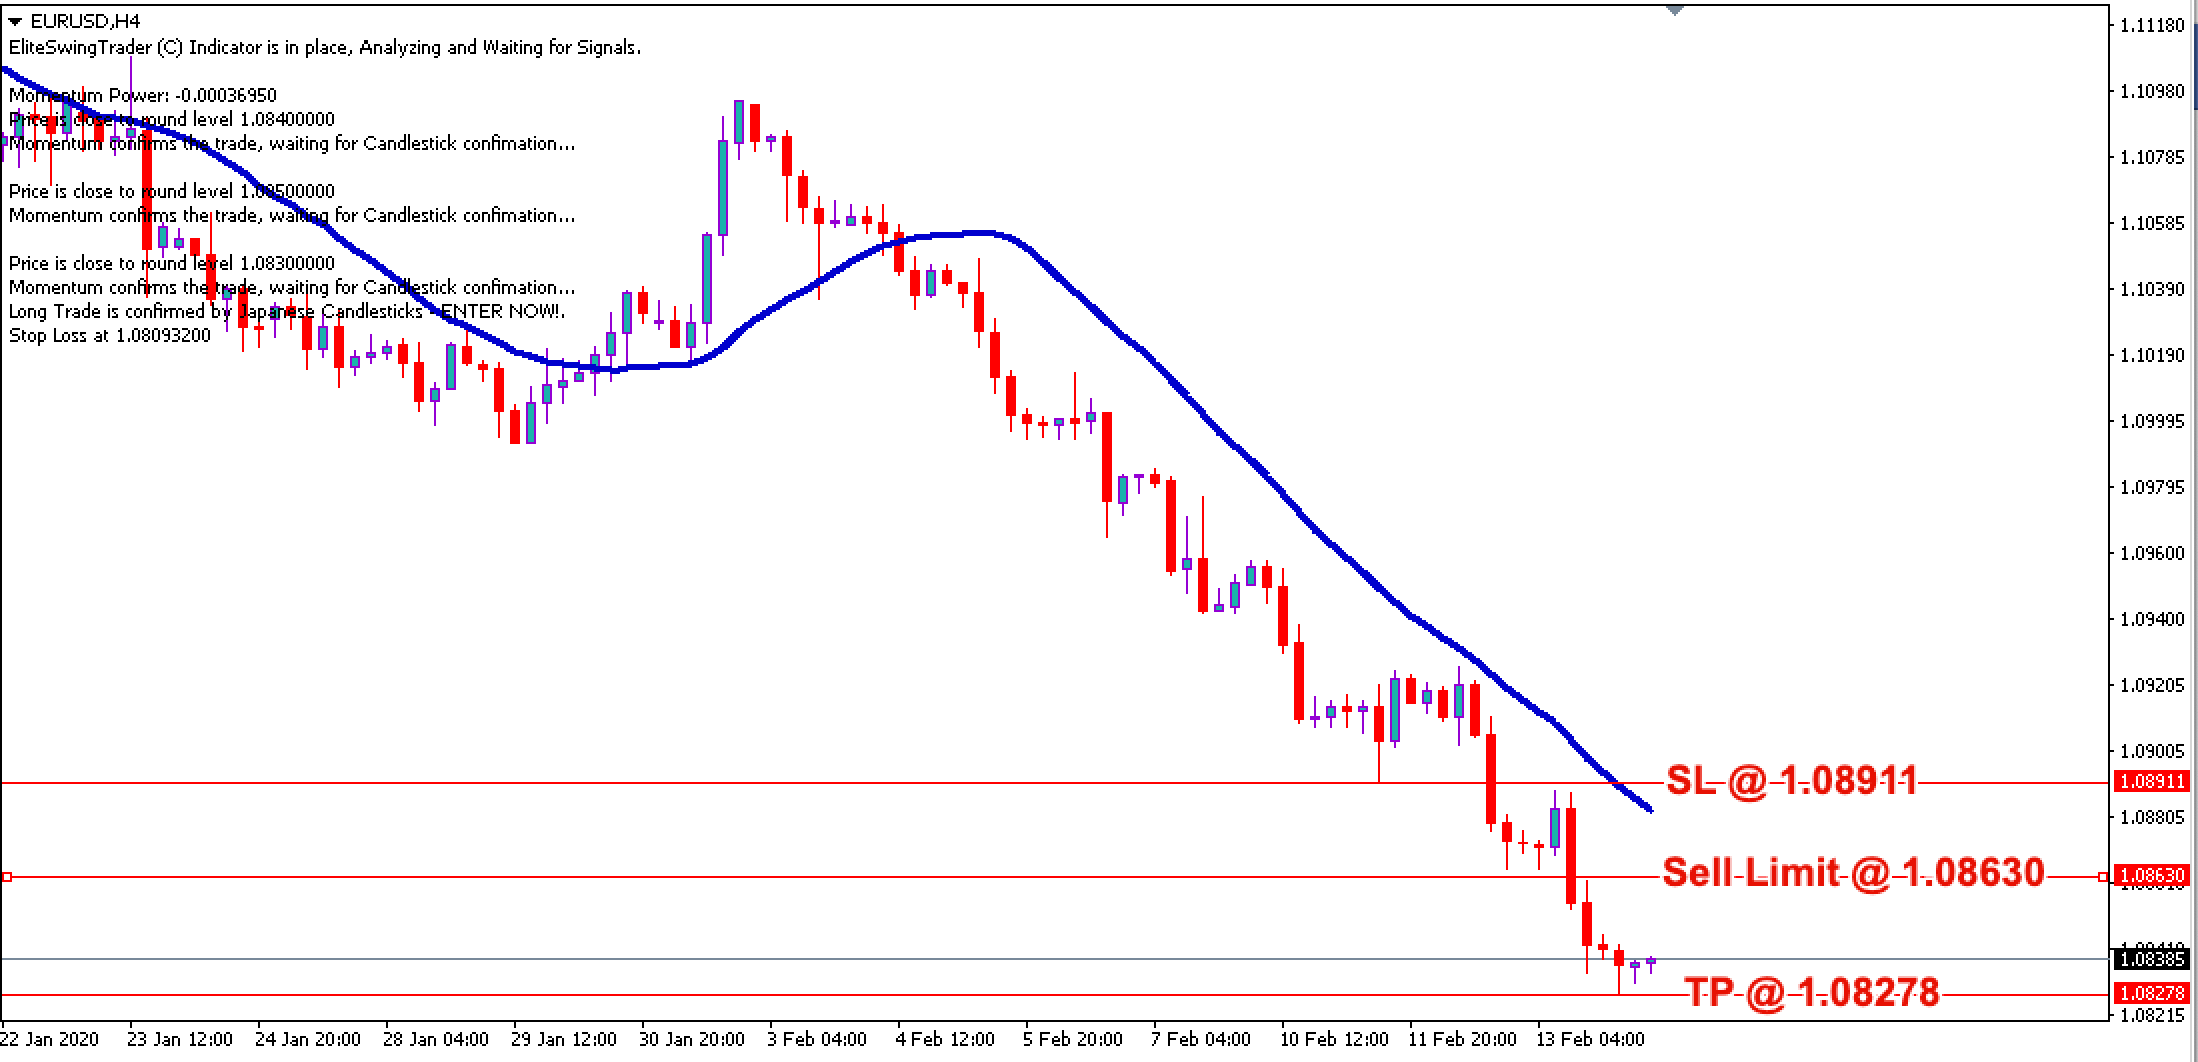 EUR/USD Daily Price Forecast – 14th Feb 2020